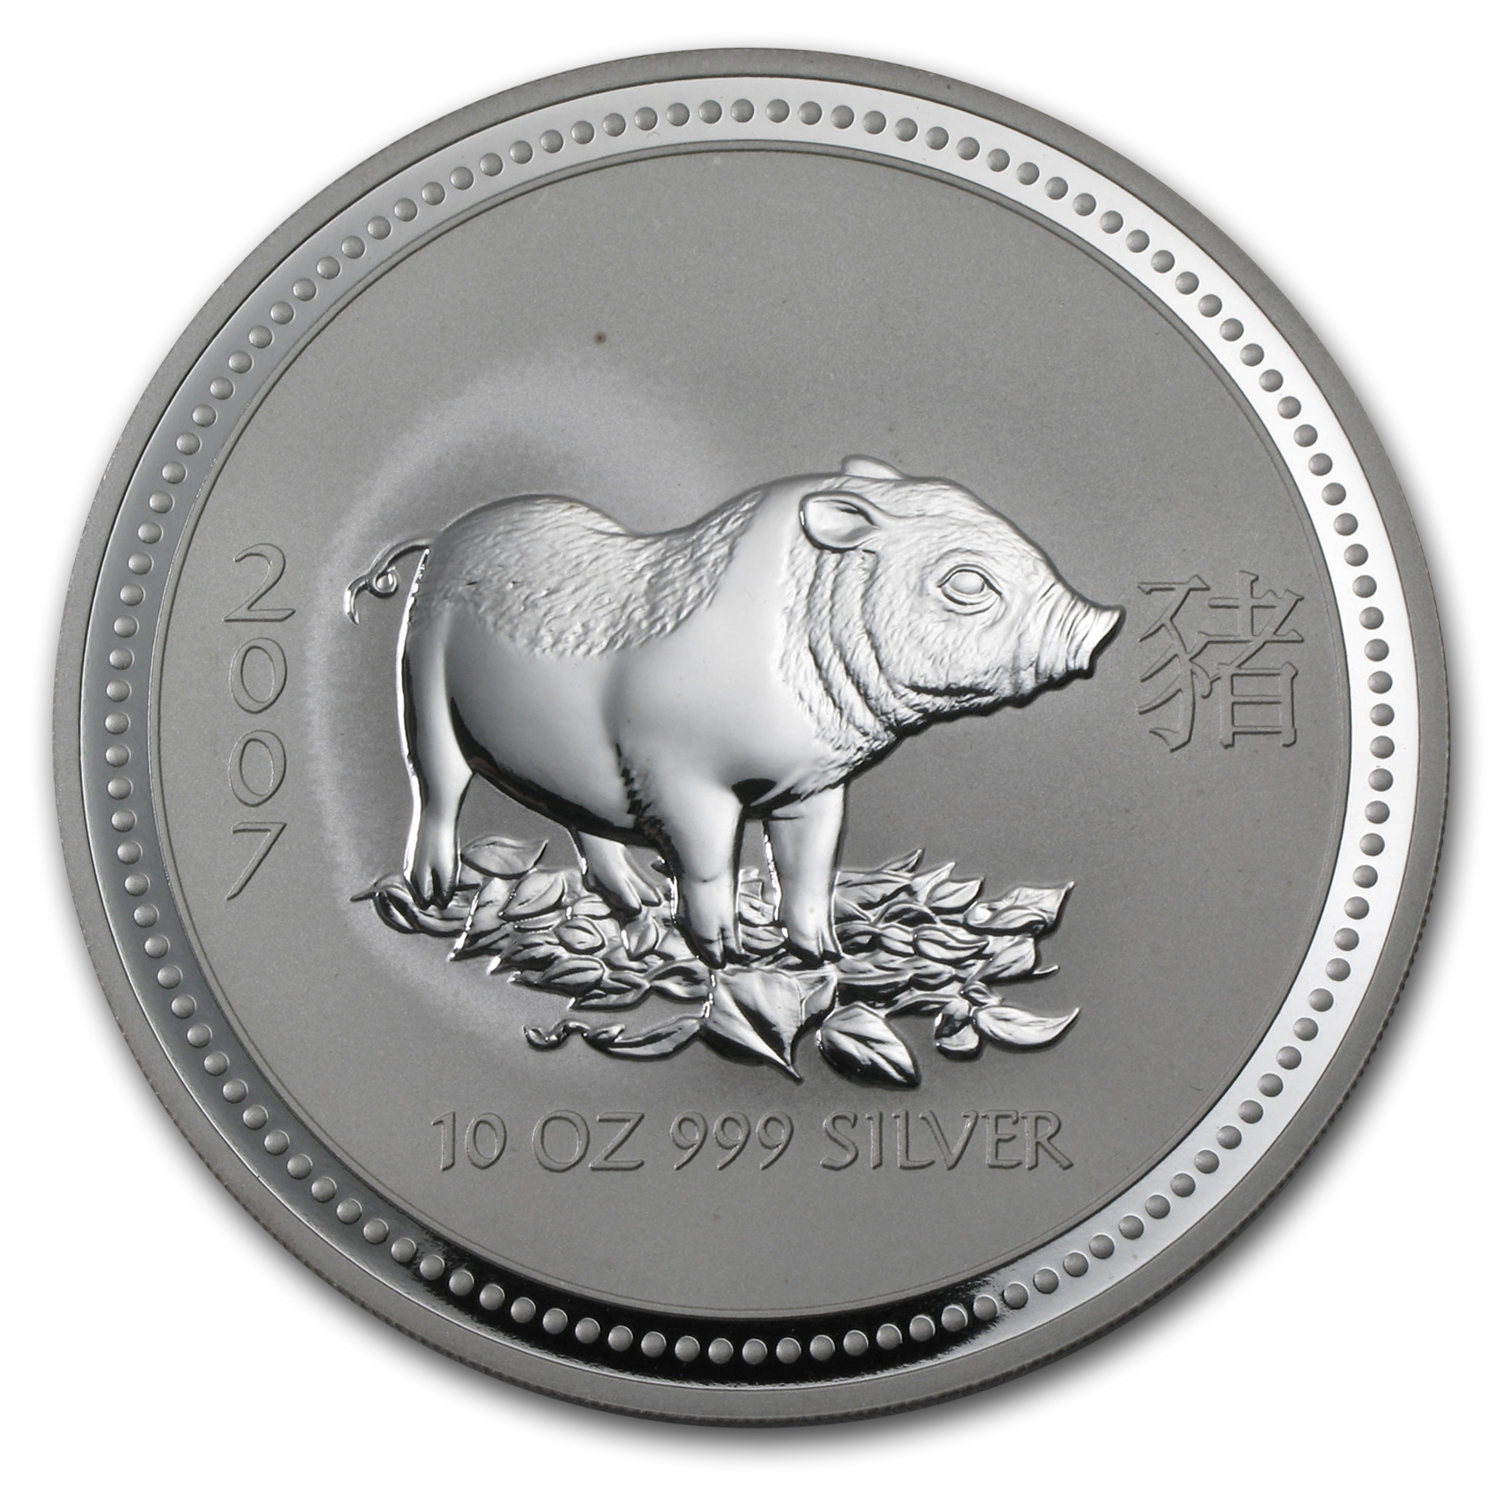 2007 10 oz Silver Australian Year of the Pig BU